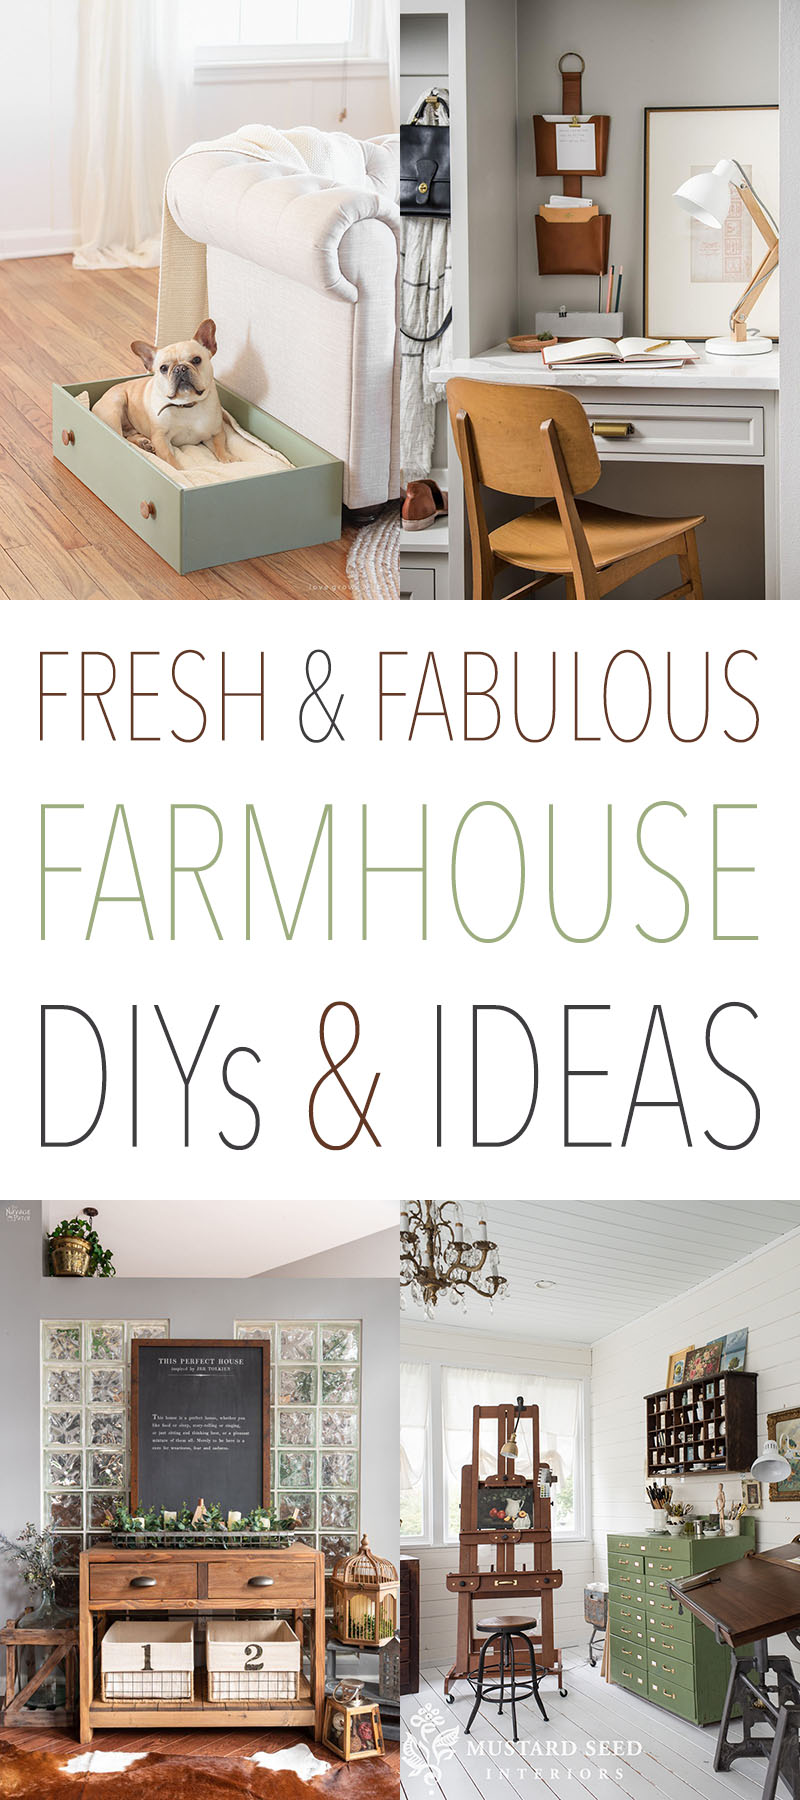 Fresh and Fabulous Farmhouse DIYS and Ideas are waiting for you over at TheCottageMarket.com Keep up with what is new this week in the Farmhouse Blogosphere